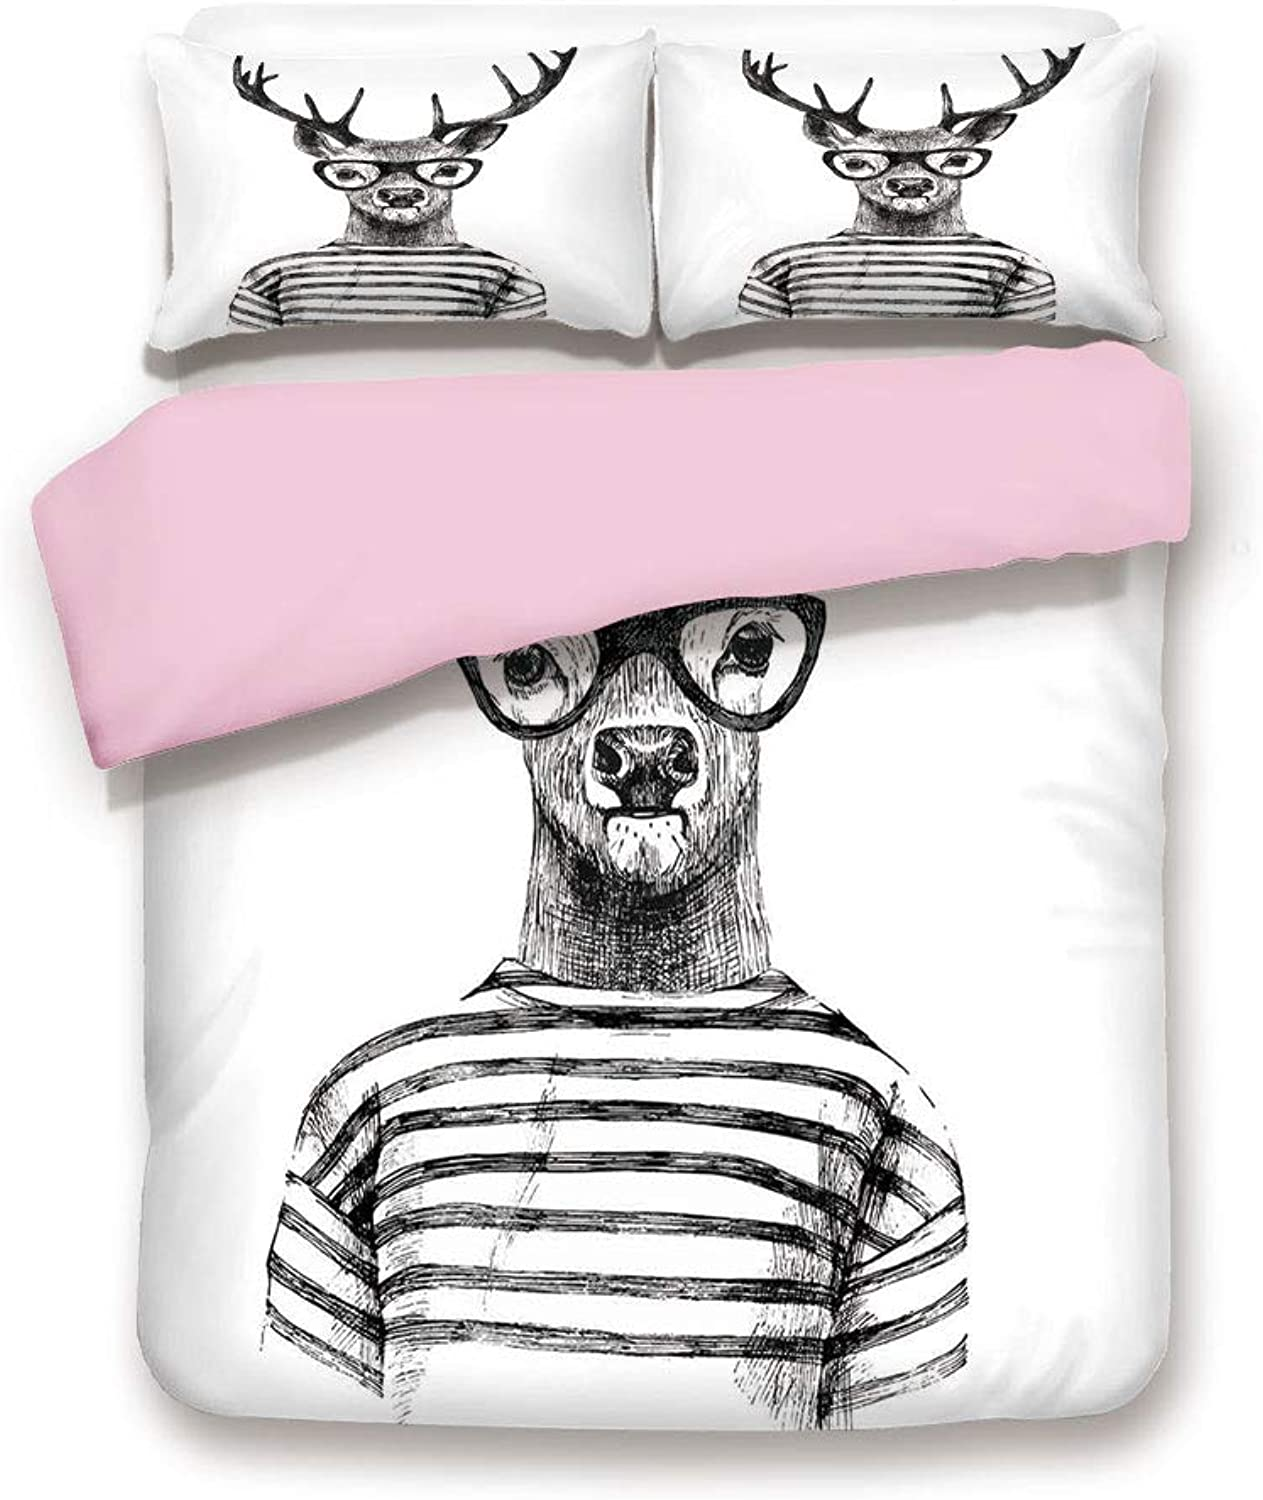 Pink Duvet Cover Set,FULL Size,Dressed up Reindeer Headed Human Hipster Style with Glasses Stripped Shirt,Decorative 3 Piece Bedding Set with 2 Pillow Sham,Best Gift For Girls Women,Charcoal Grey Whit